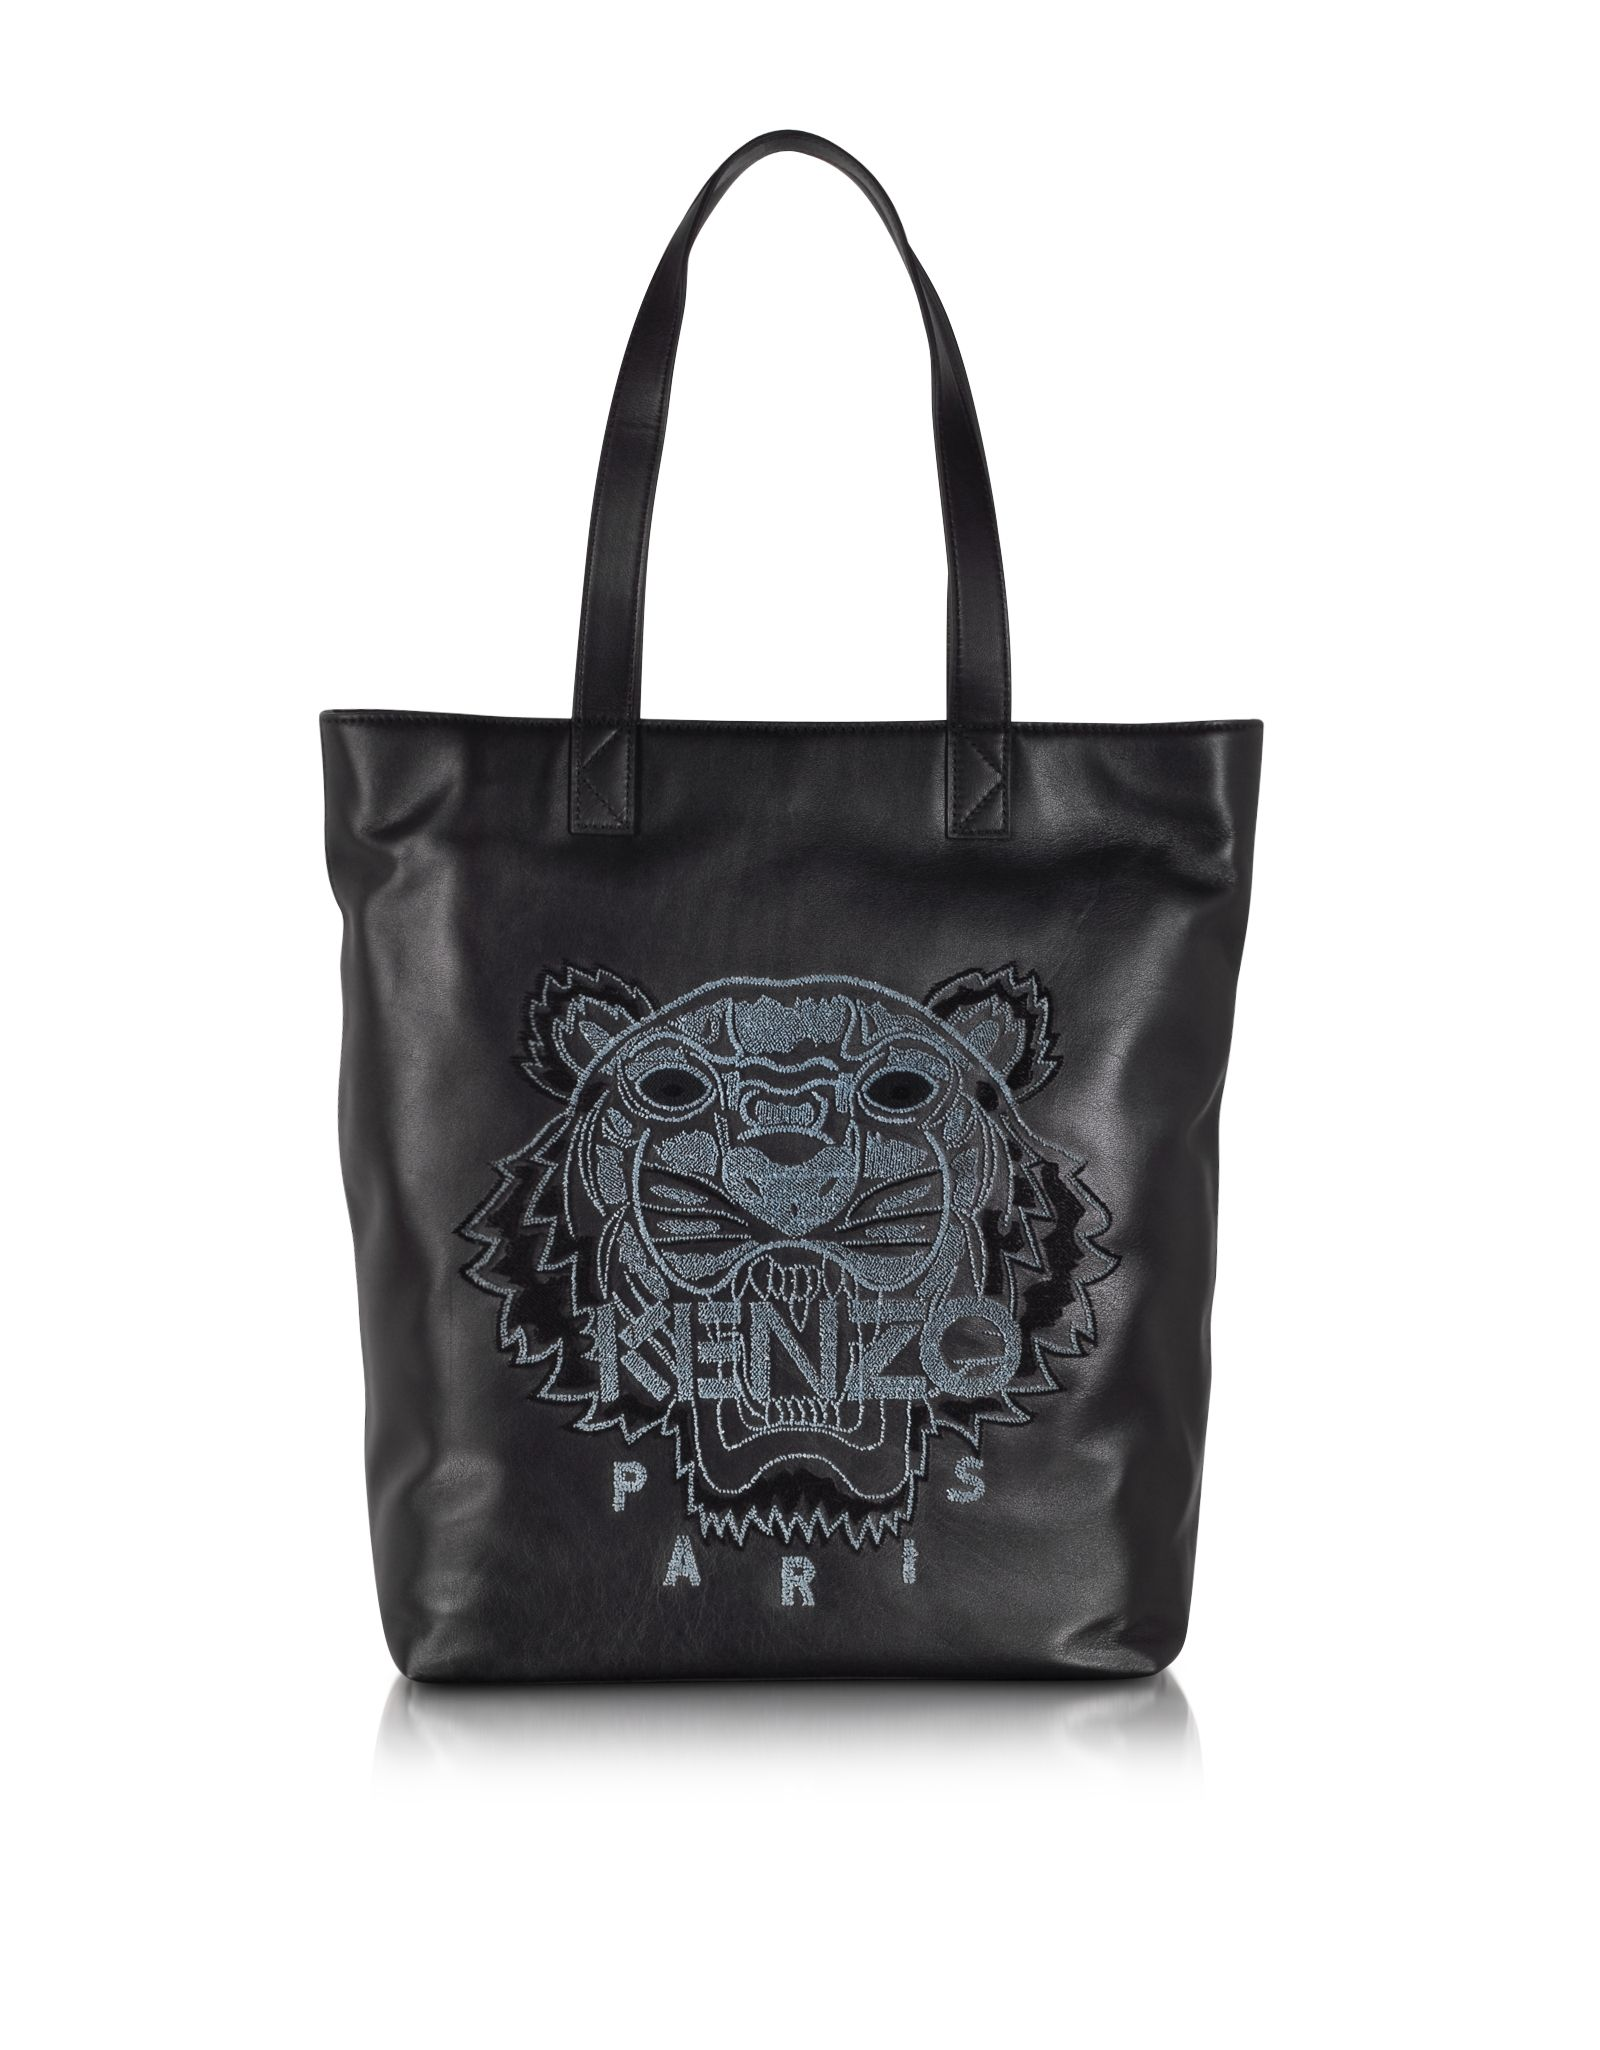 bd1203405910 Kenzo Black Leather Tiger Tote Bag at FORZIERI